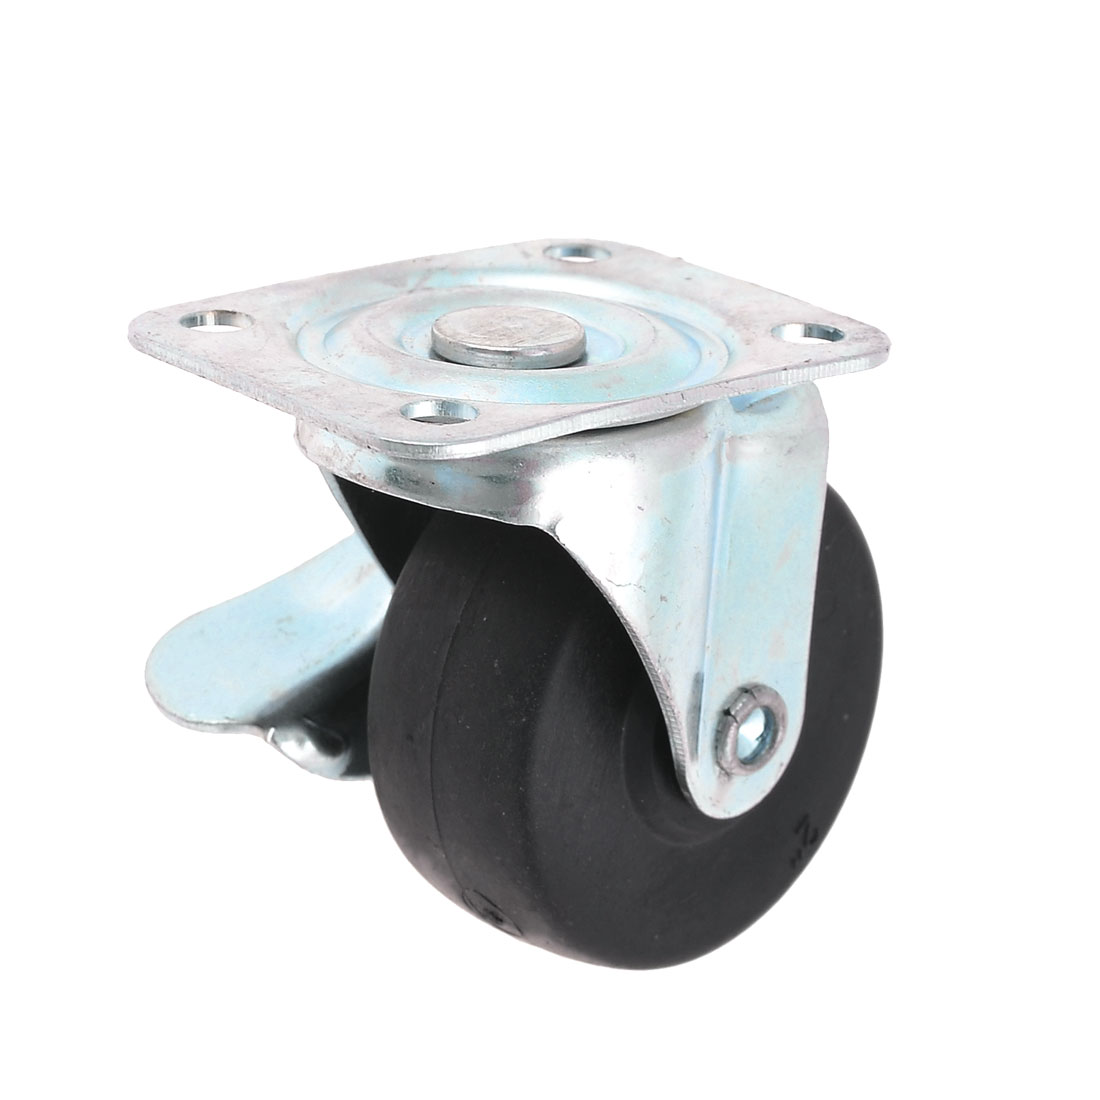 "Sickbed Laundry Cart Swivel Plate 2"" Dia PP Wheel Metal Plate Caster Black"